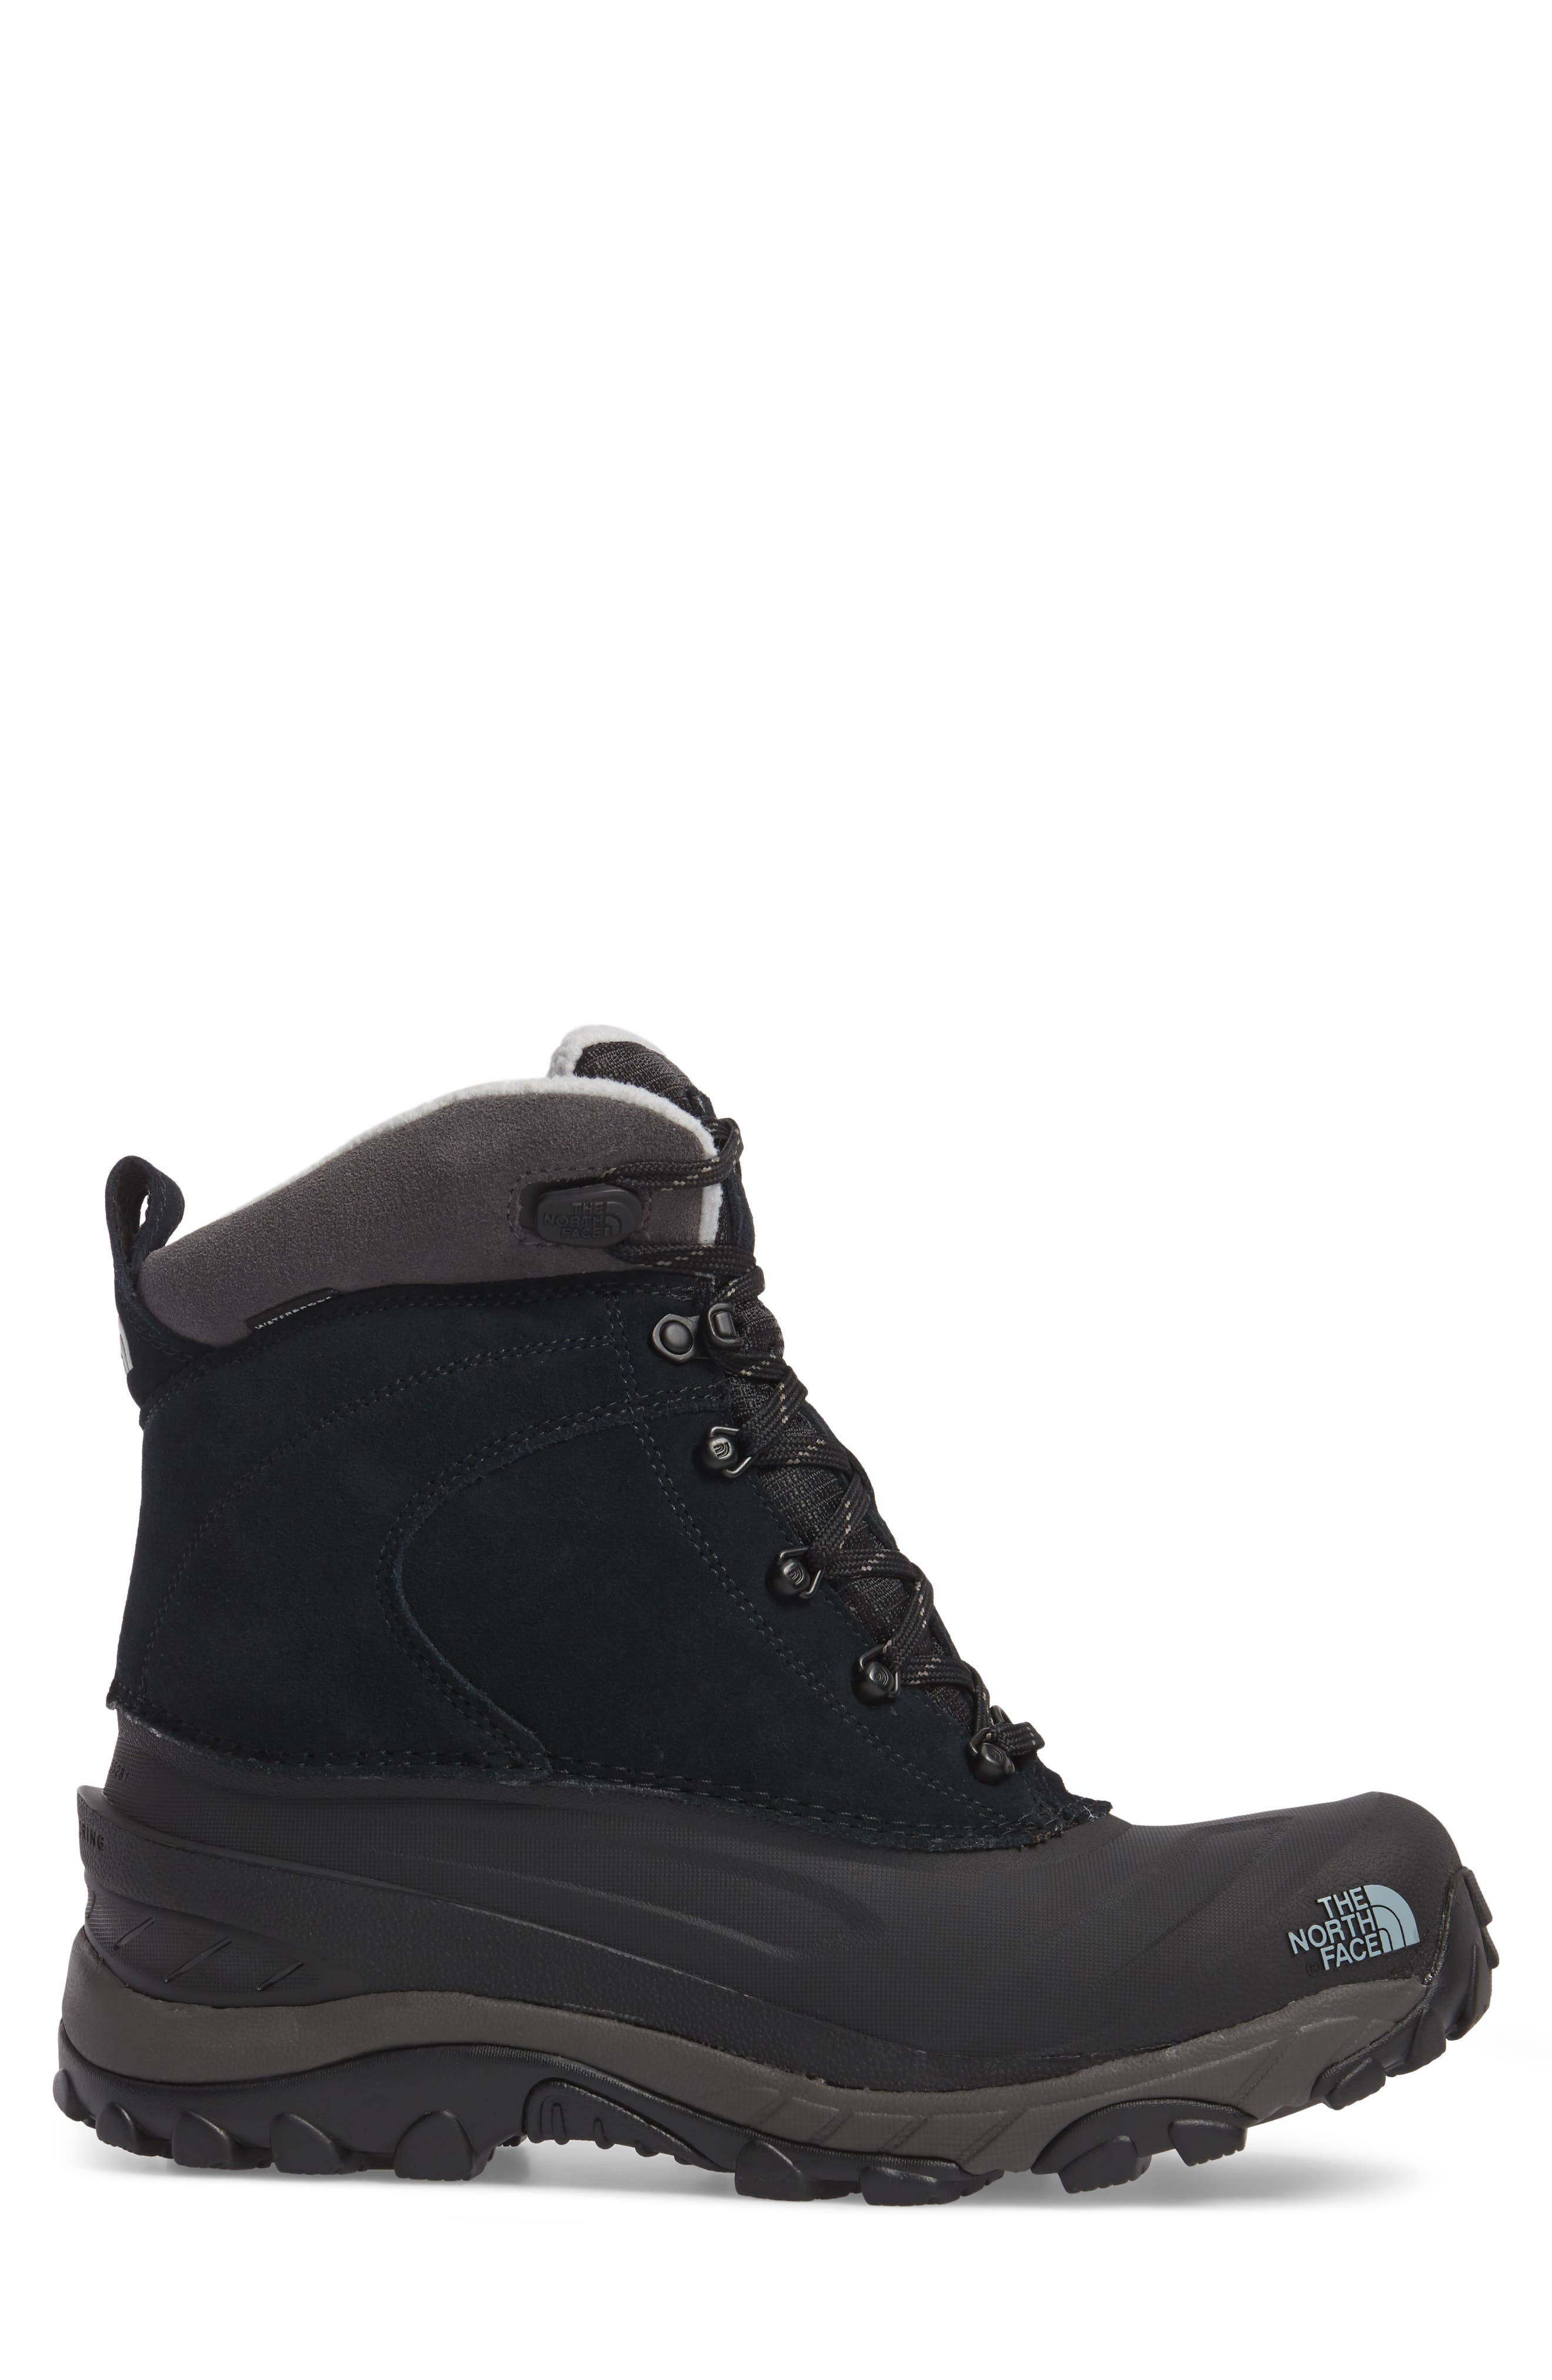 Alternate Image 3  - The North Face Chilkat III Waterproof Insulated Boot (Men)